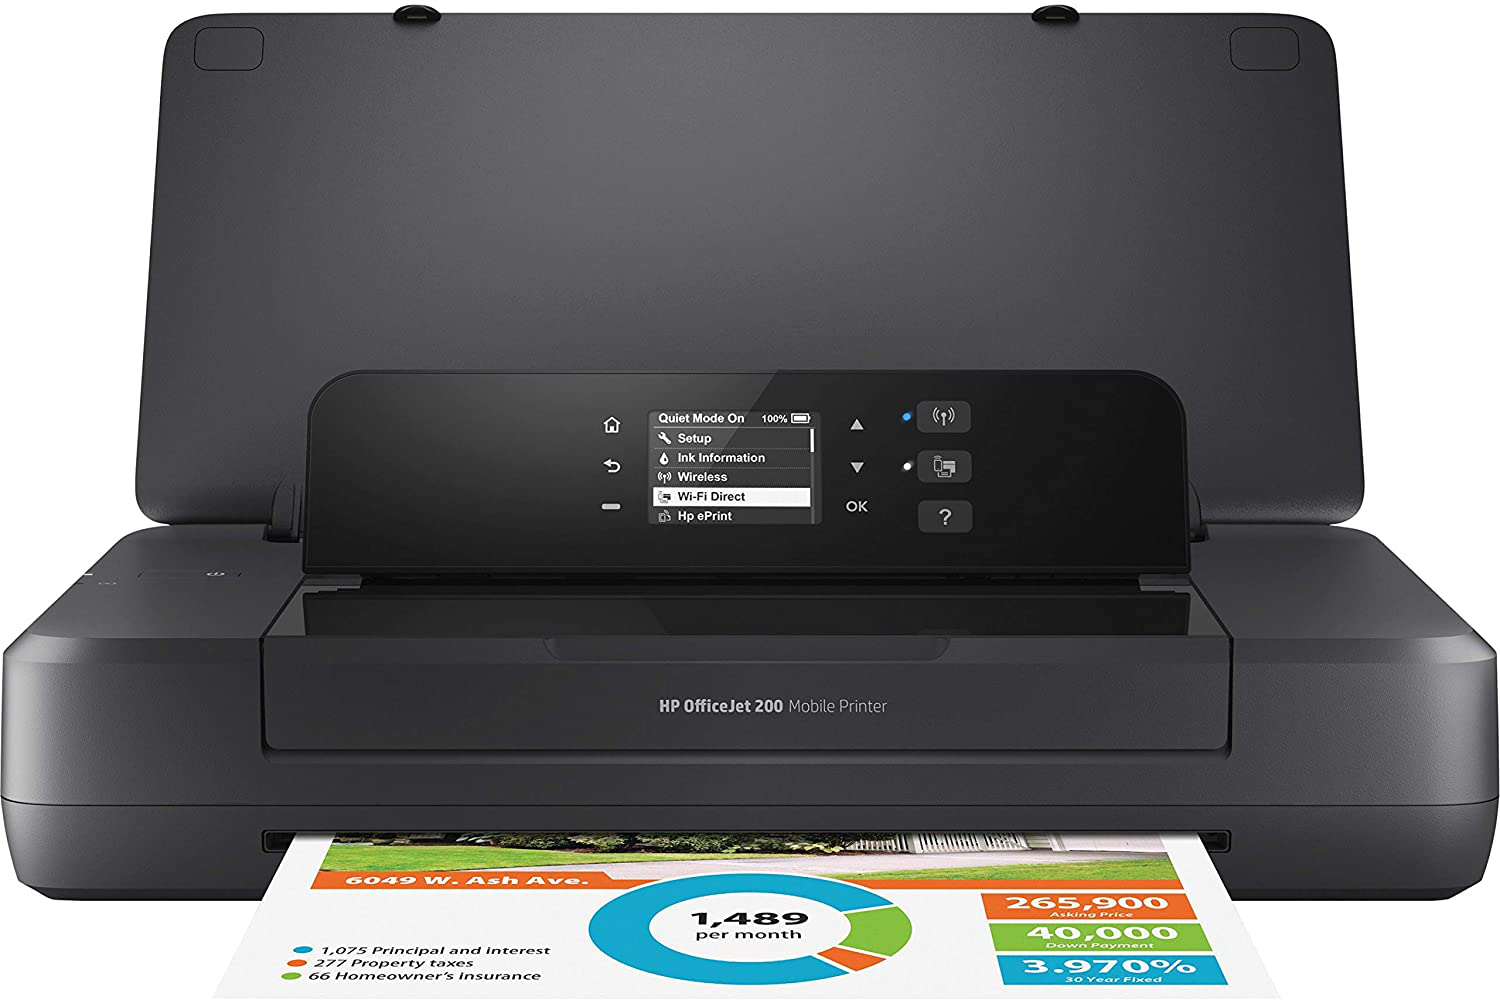 The HP OfficeJet Mobile 200 is a sleek offering from HP